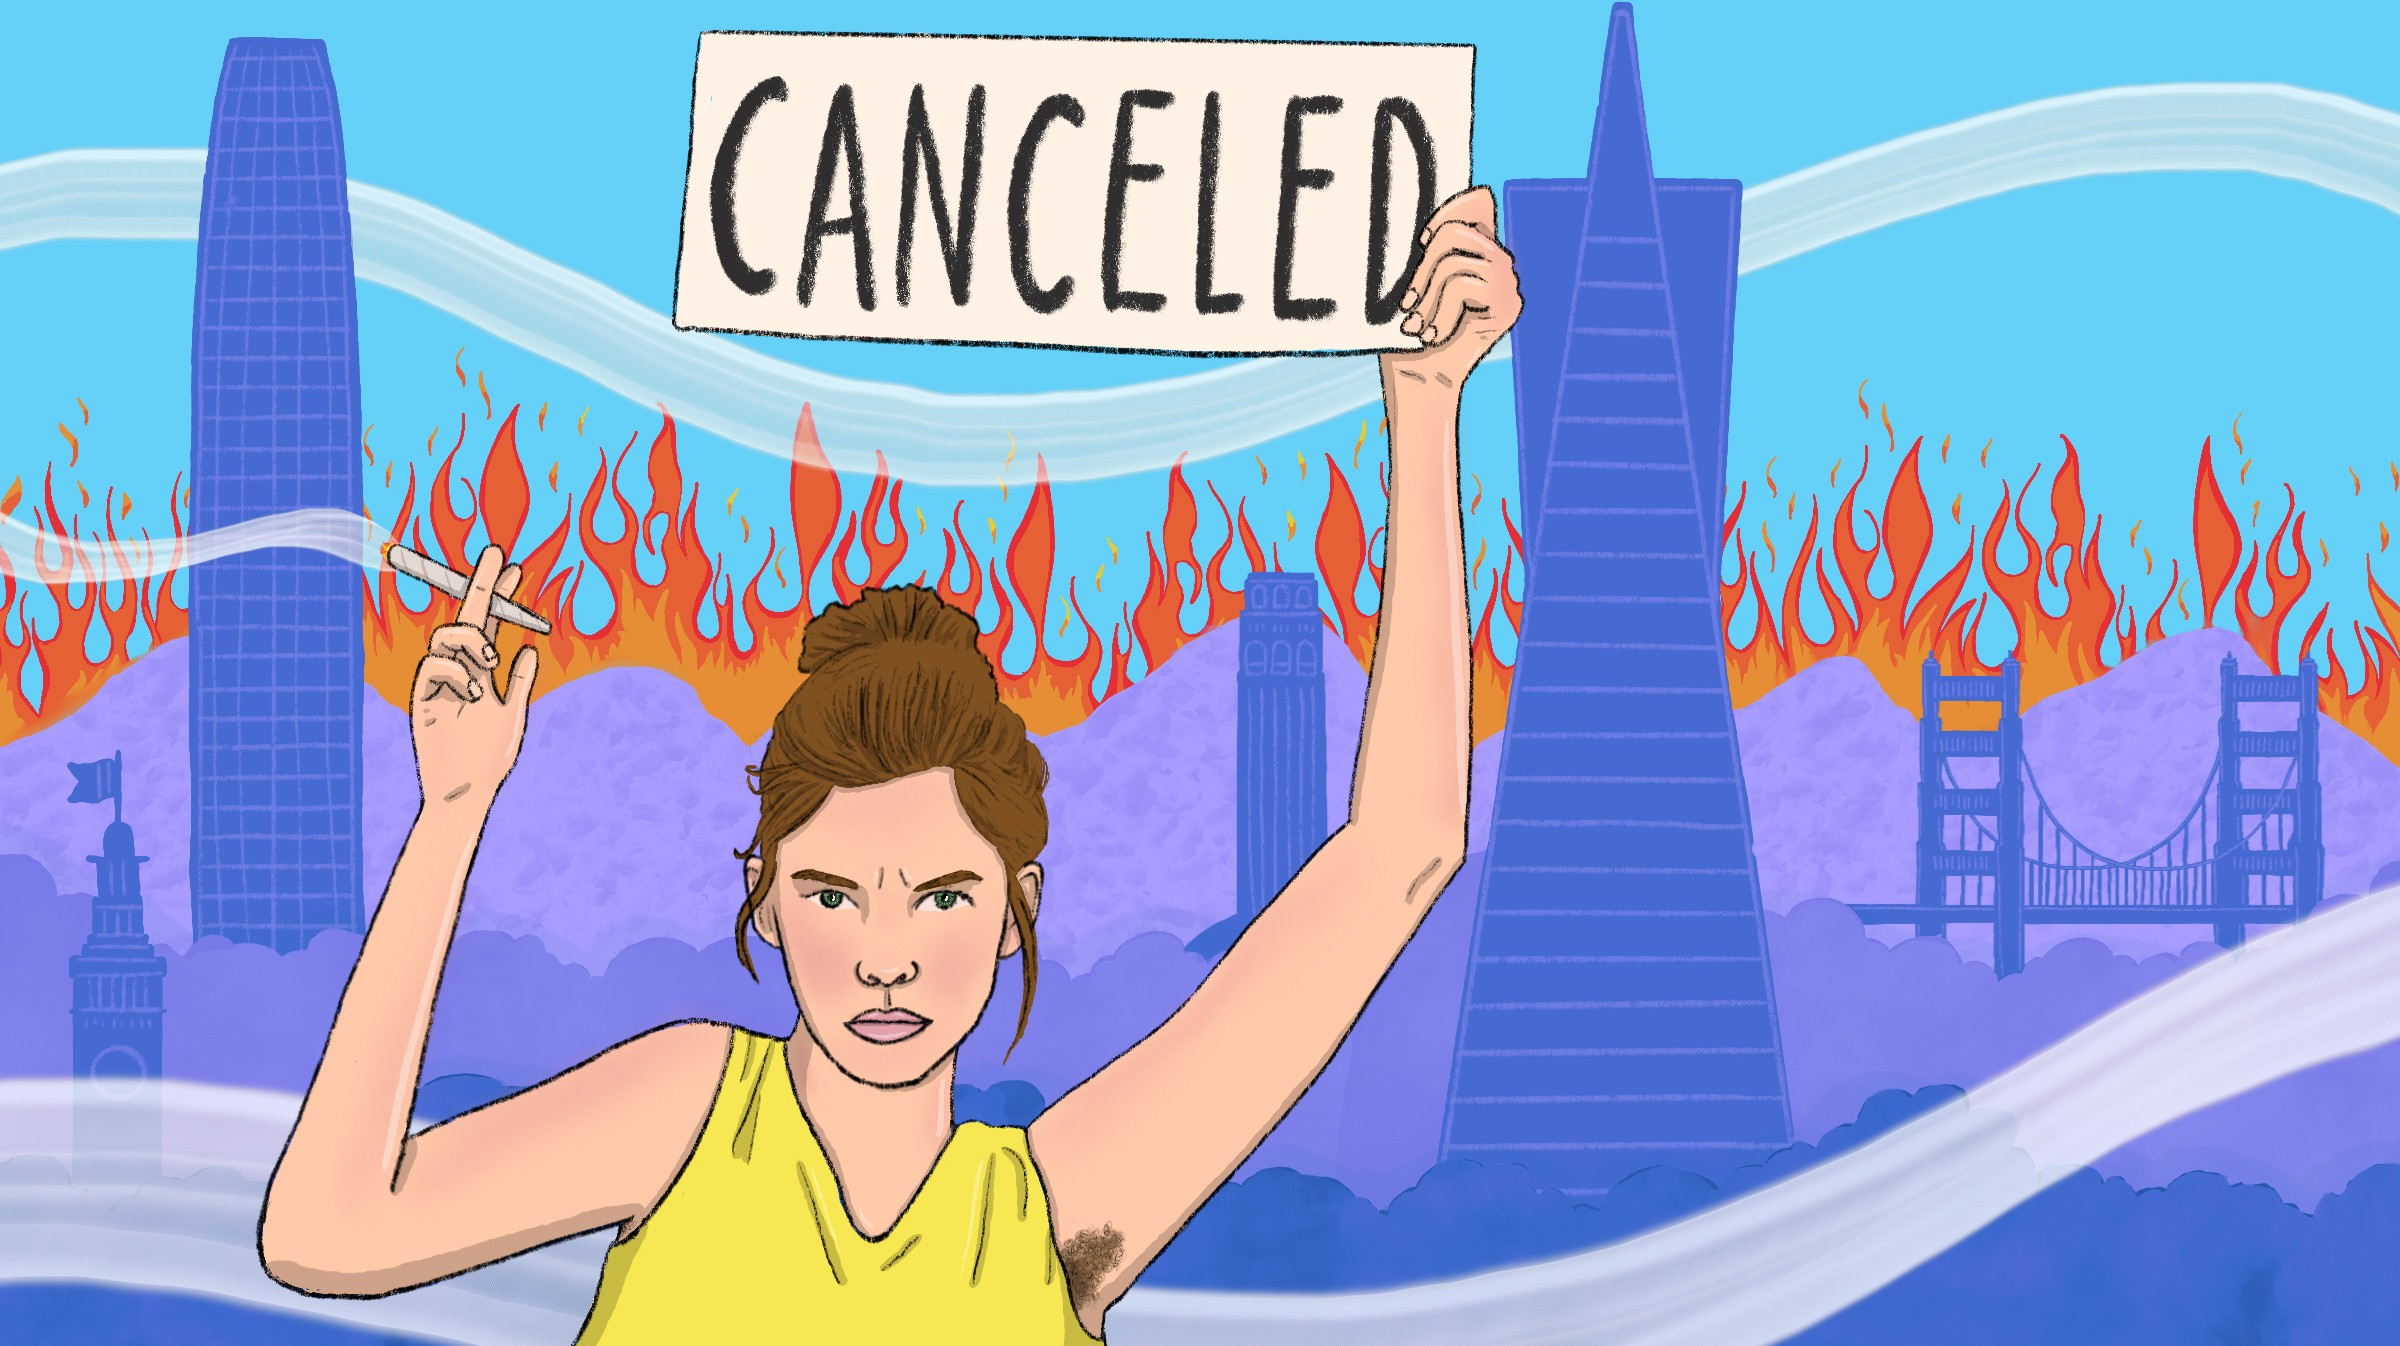 """A person with their hair in a messy bun, holding up a lit joint in one hand and a sign that says """"Canceled"""" with another (revealing unshaved armpits). In the distance are SF skyscrapers and the Golden Gate Bridge; the hills behind them are all on fire, and smoke swirls around the scene."""